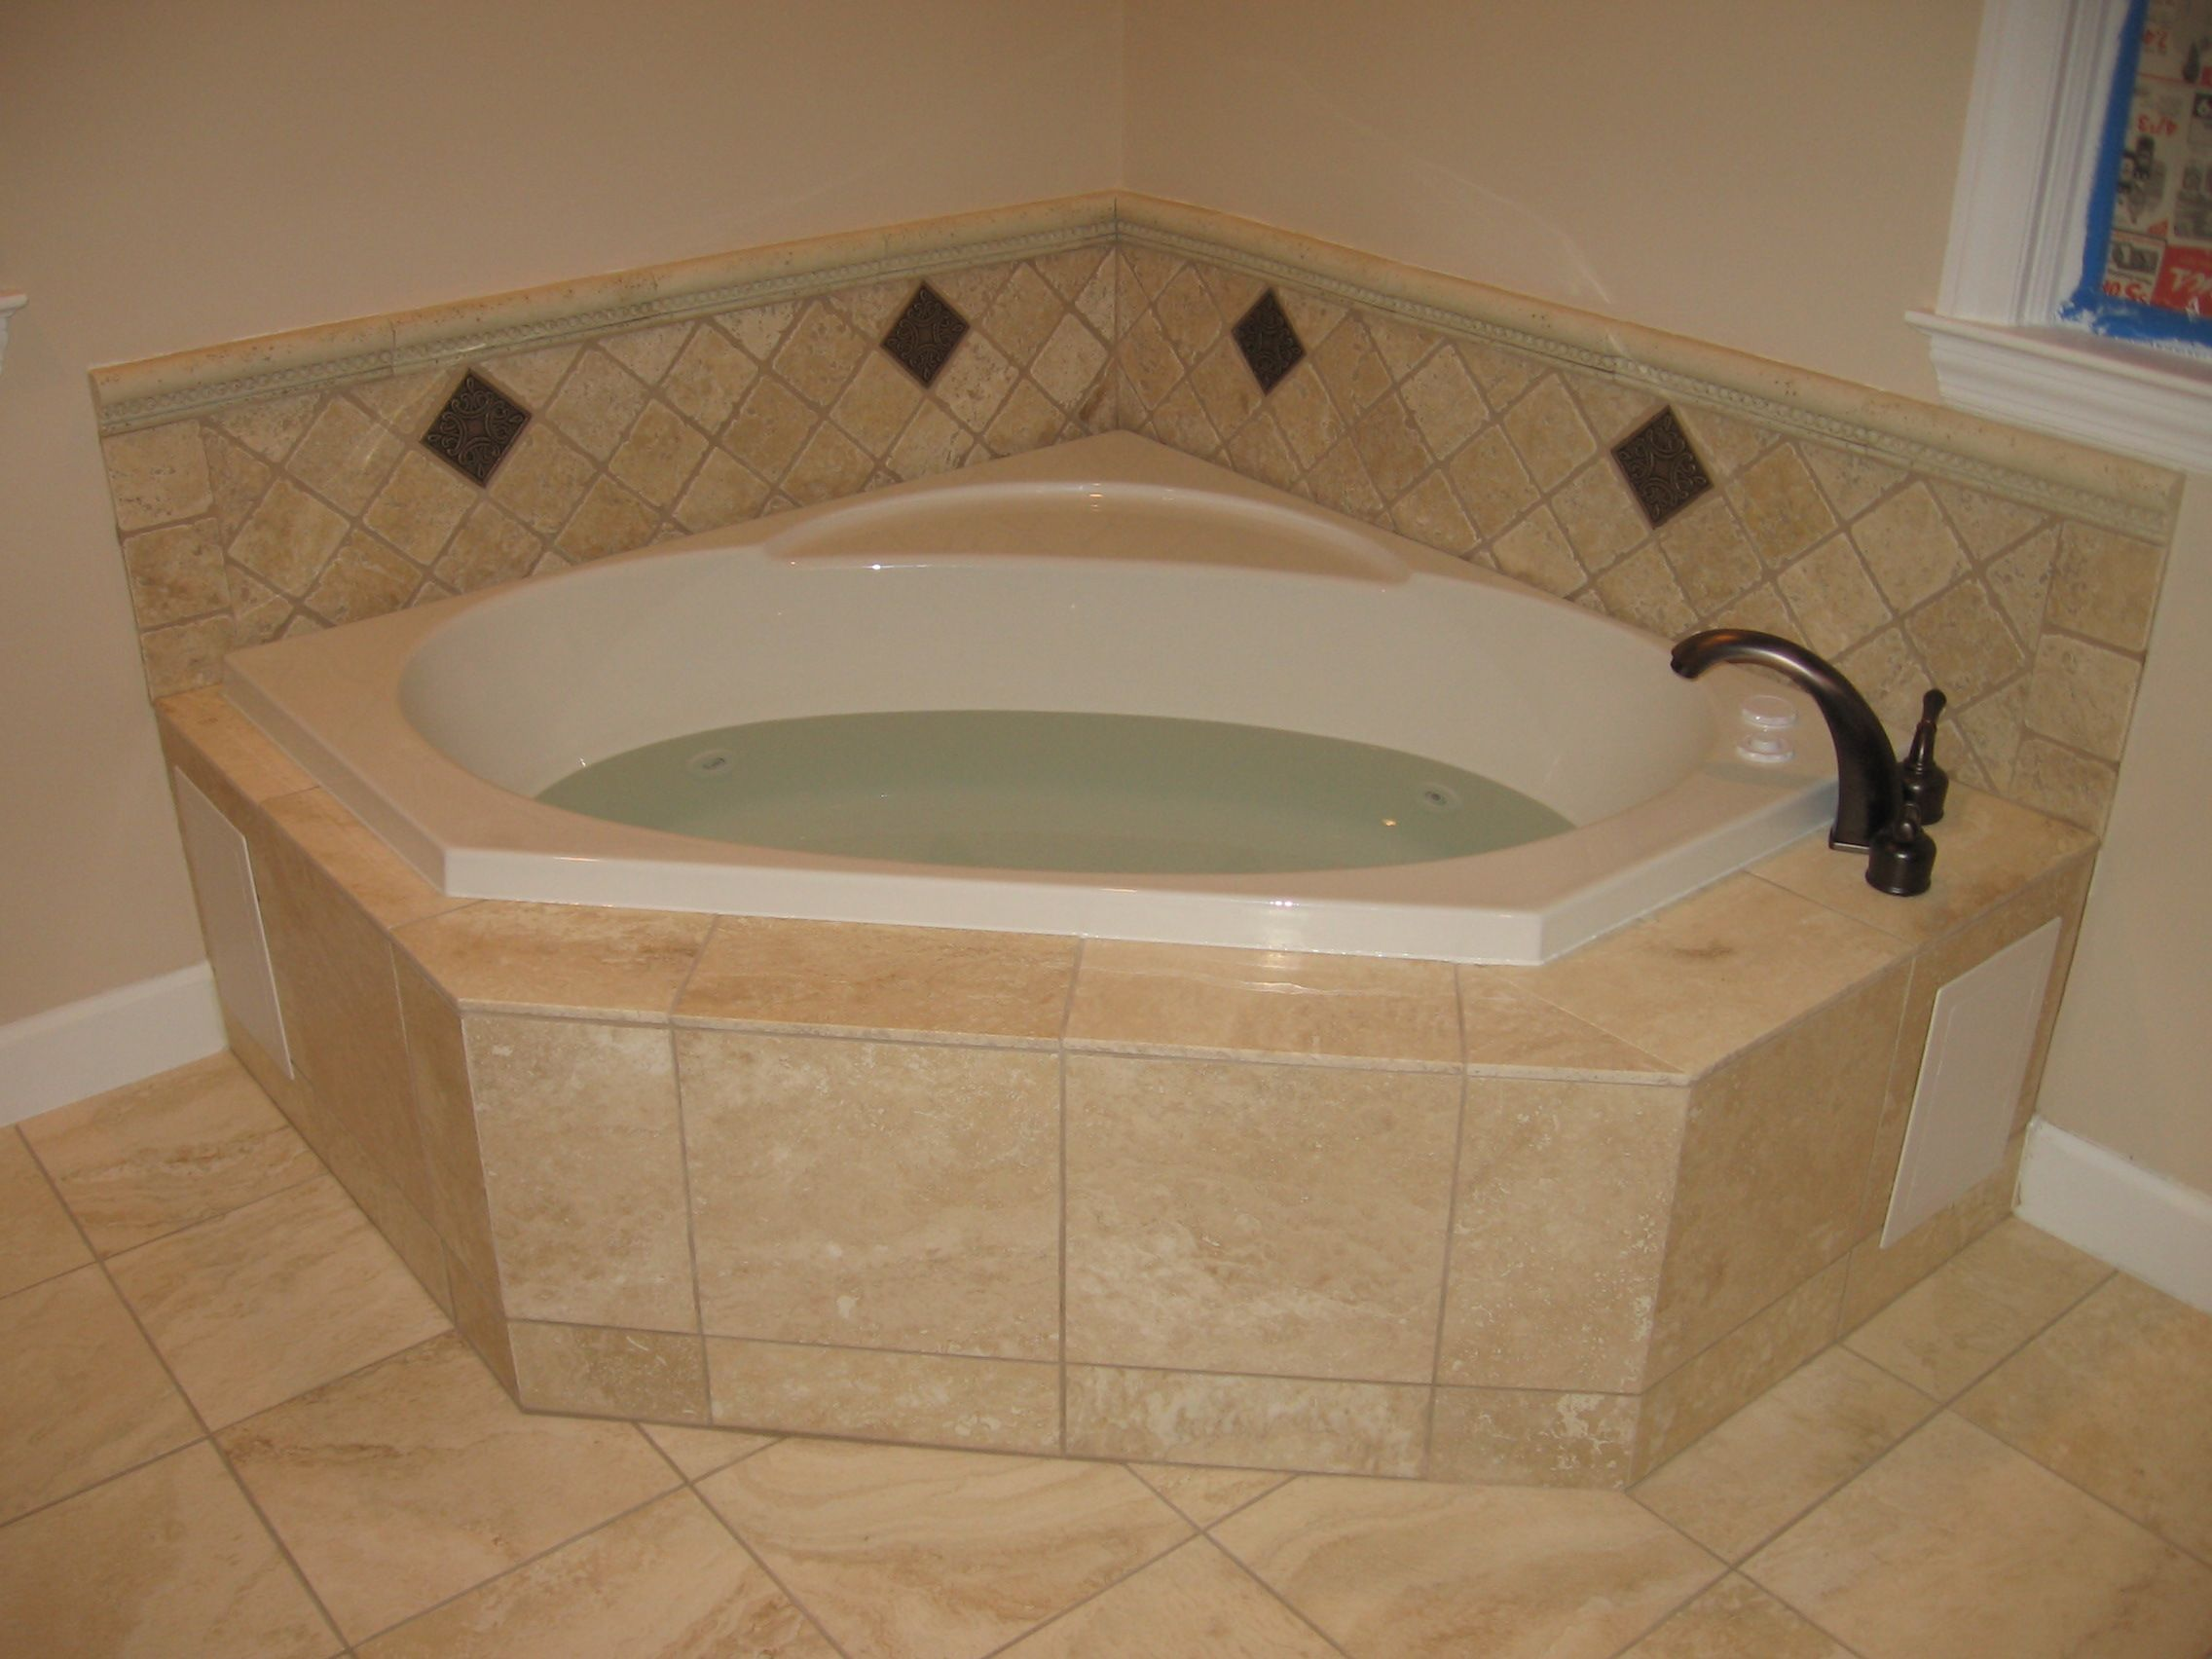 15 interesting whirlpool corner bathtub picture ideas